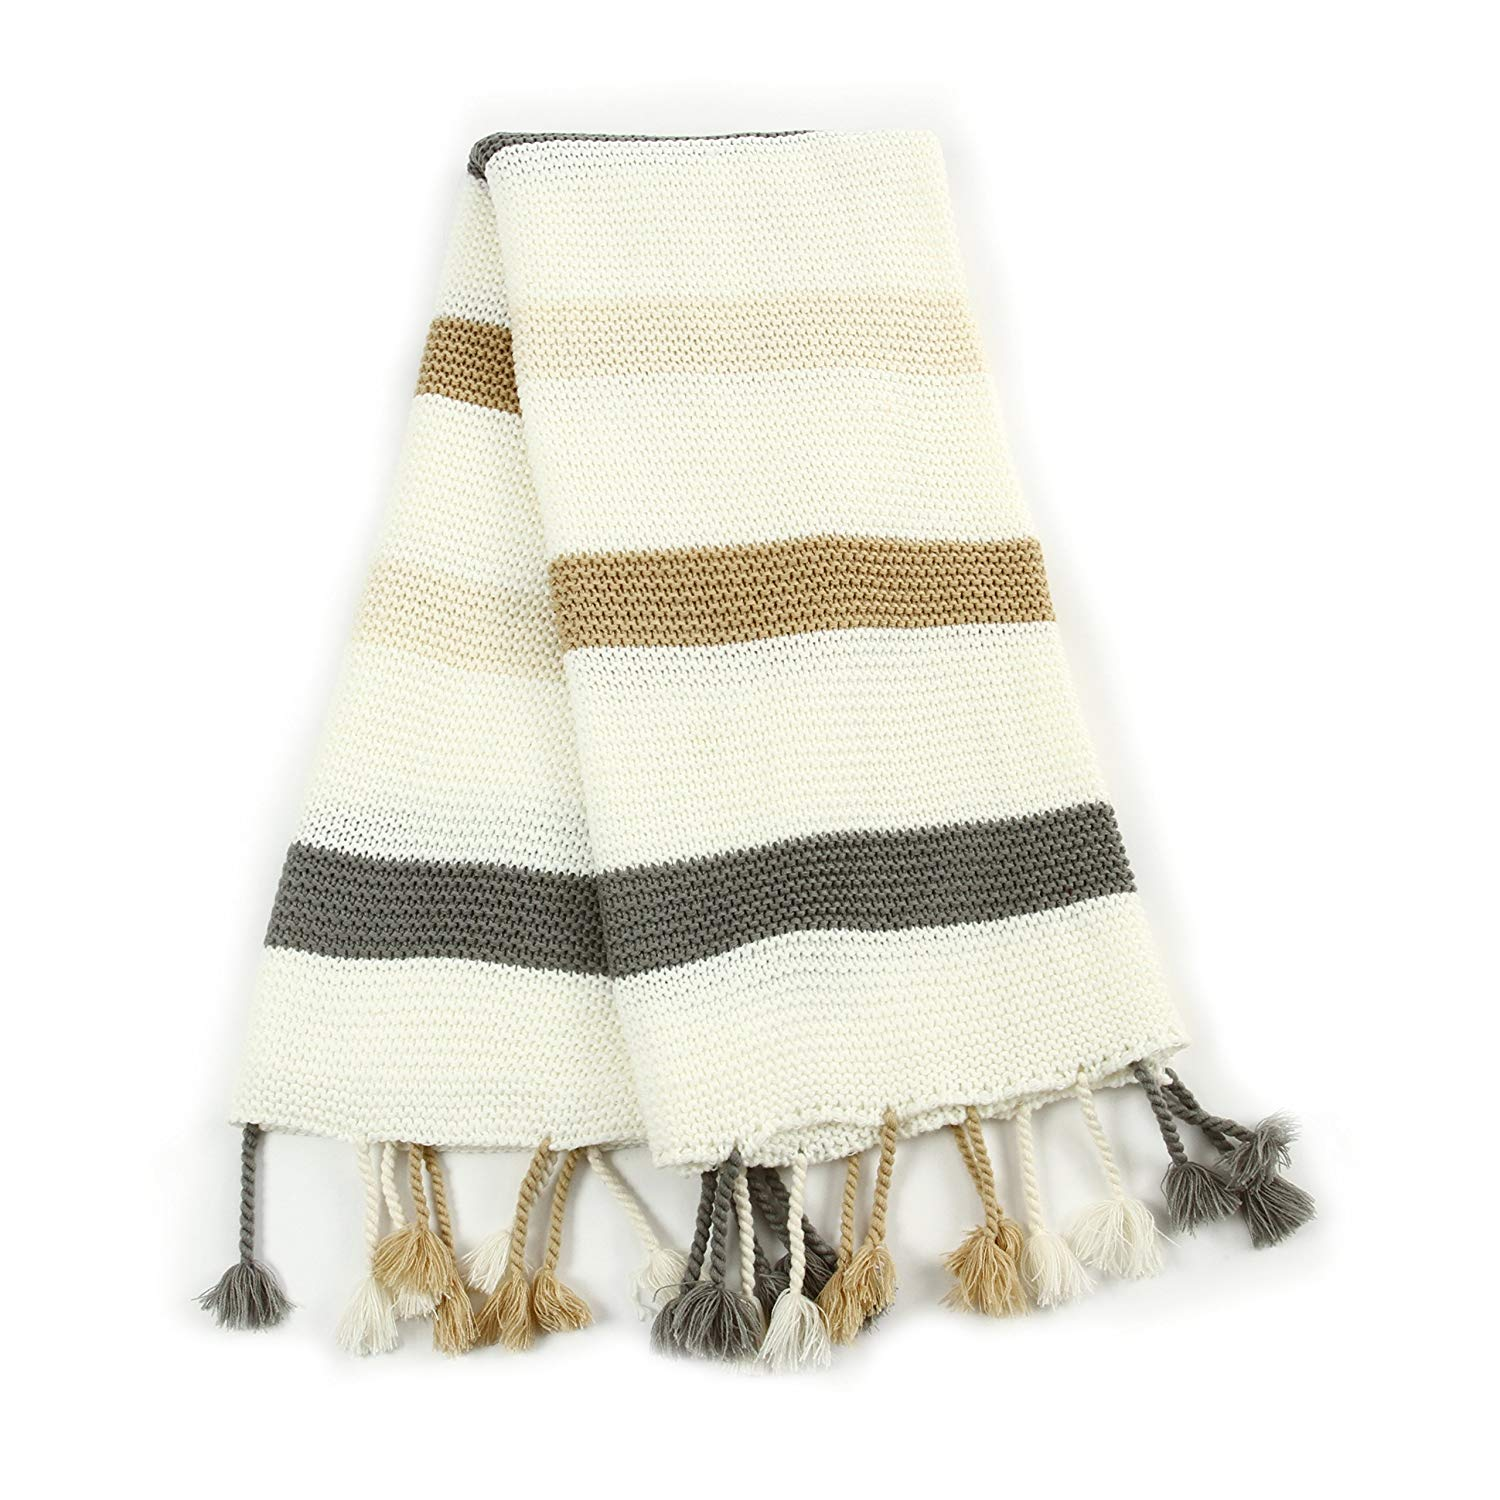 Cheap Moroccan Throw Blanket Find Moroccan Throw Blanket Deals On